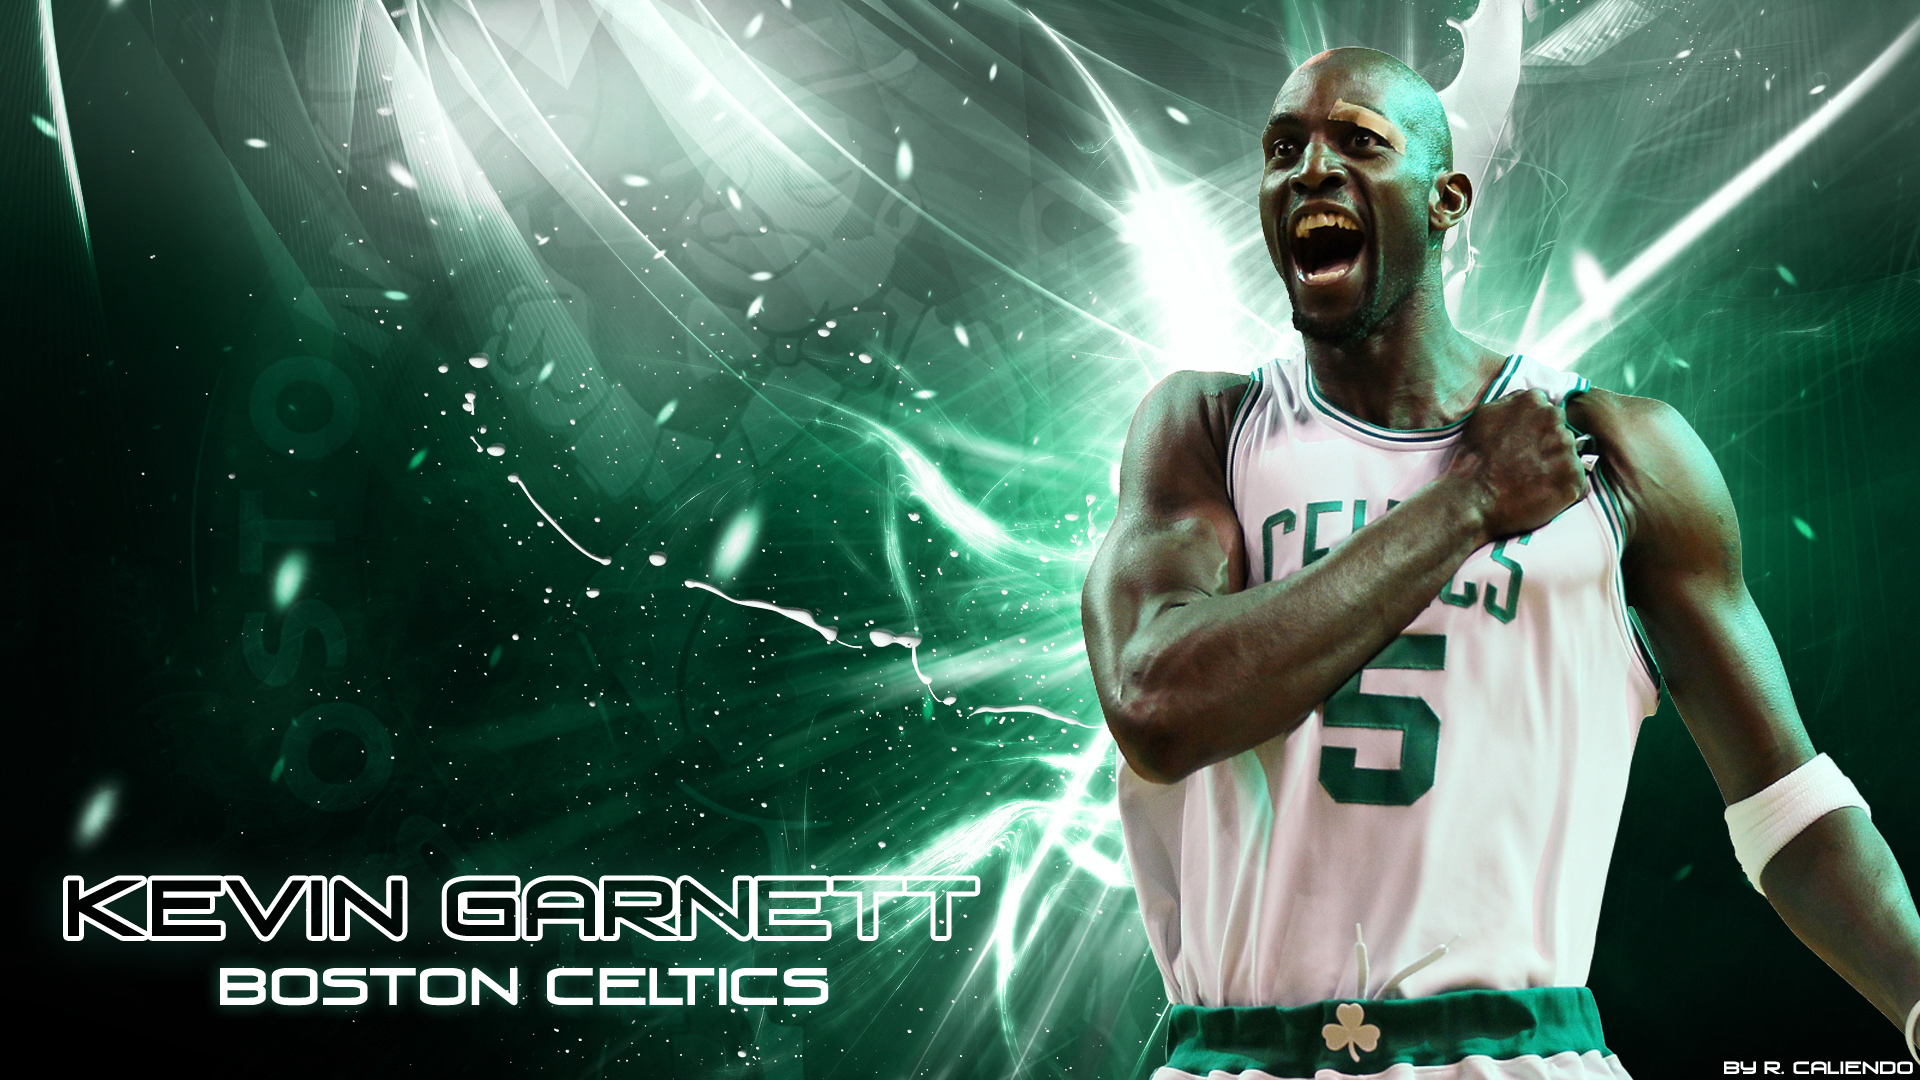 garnett chat Your best source for quality south carolina gamecocks news, rumors, analysis, stats and scores from the fan perspective.